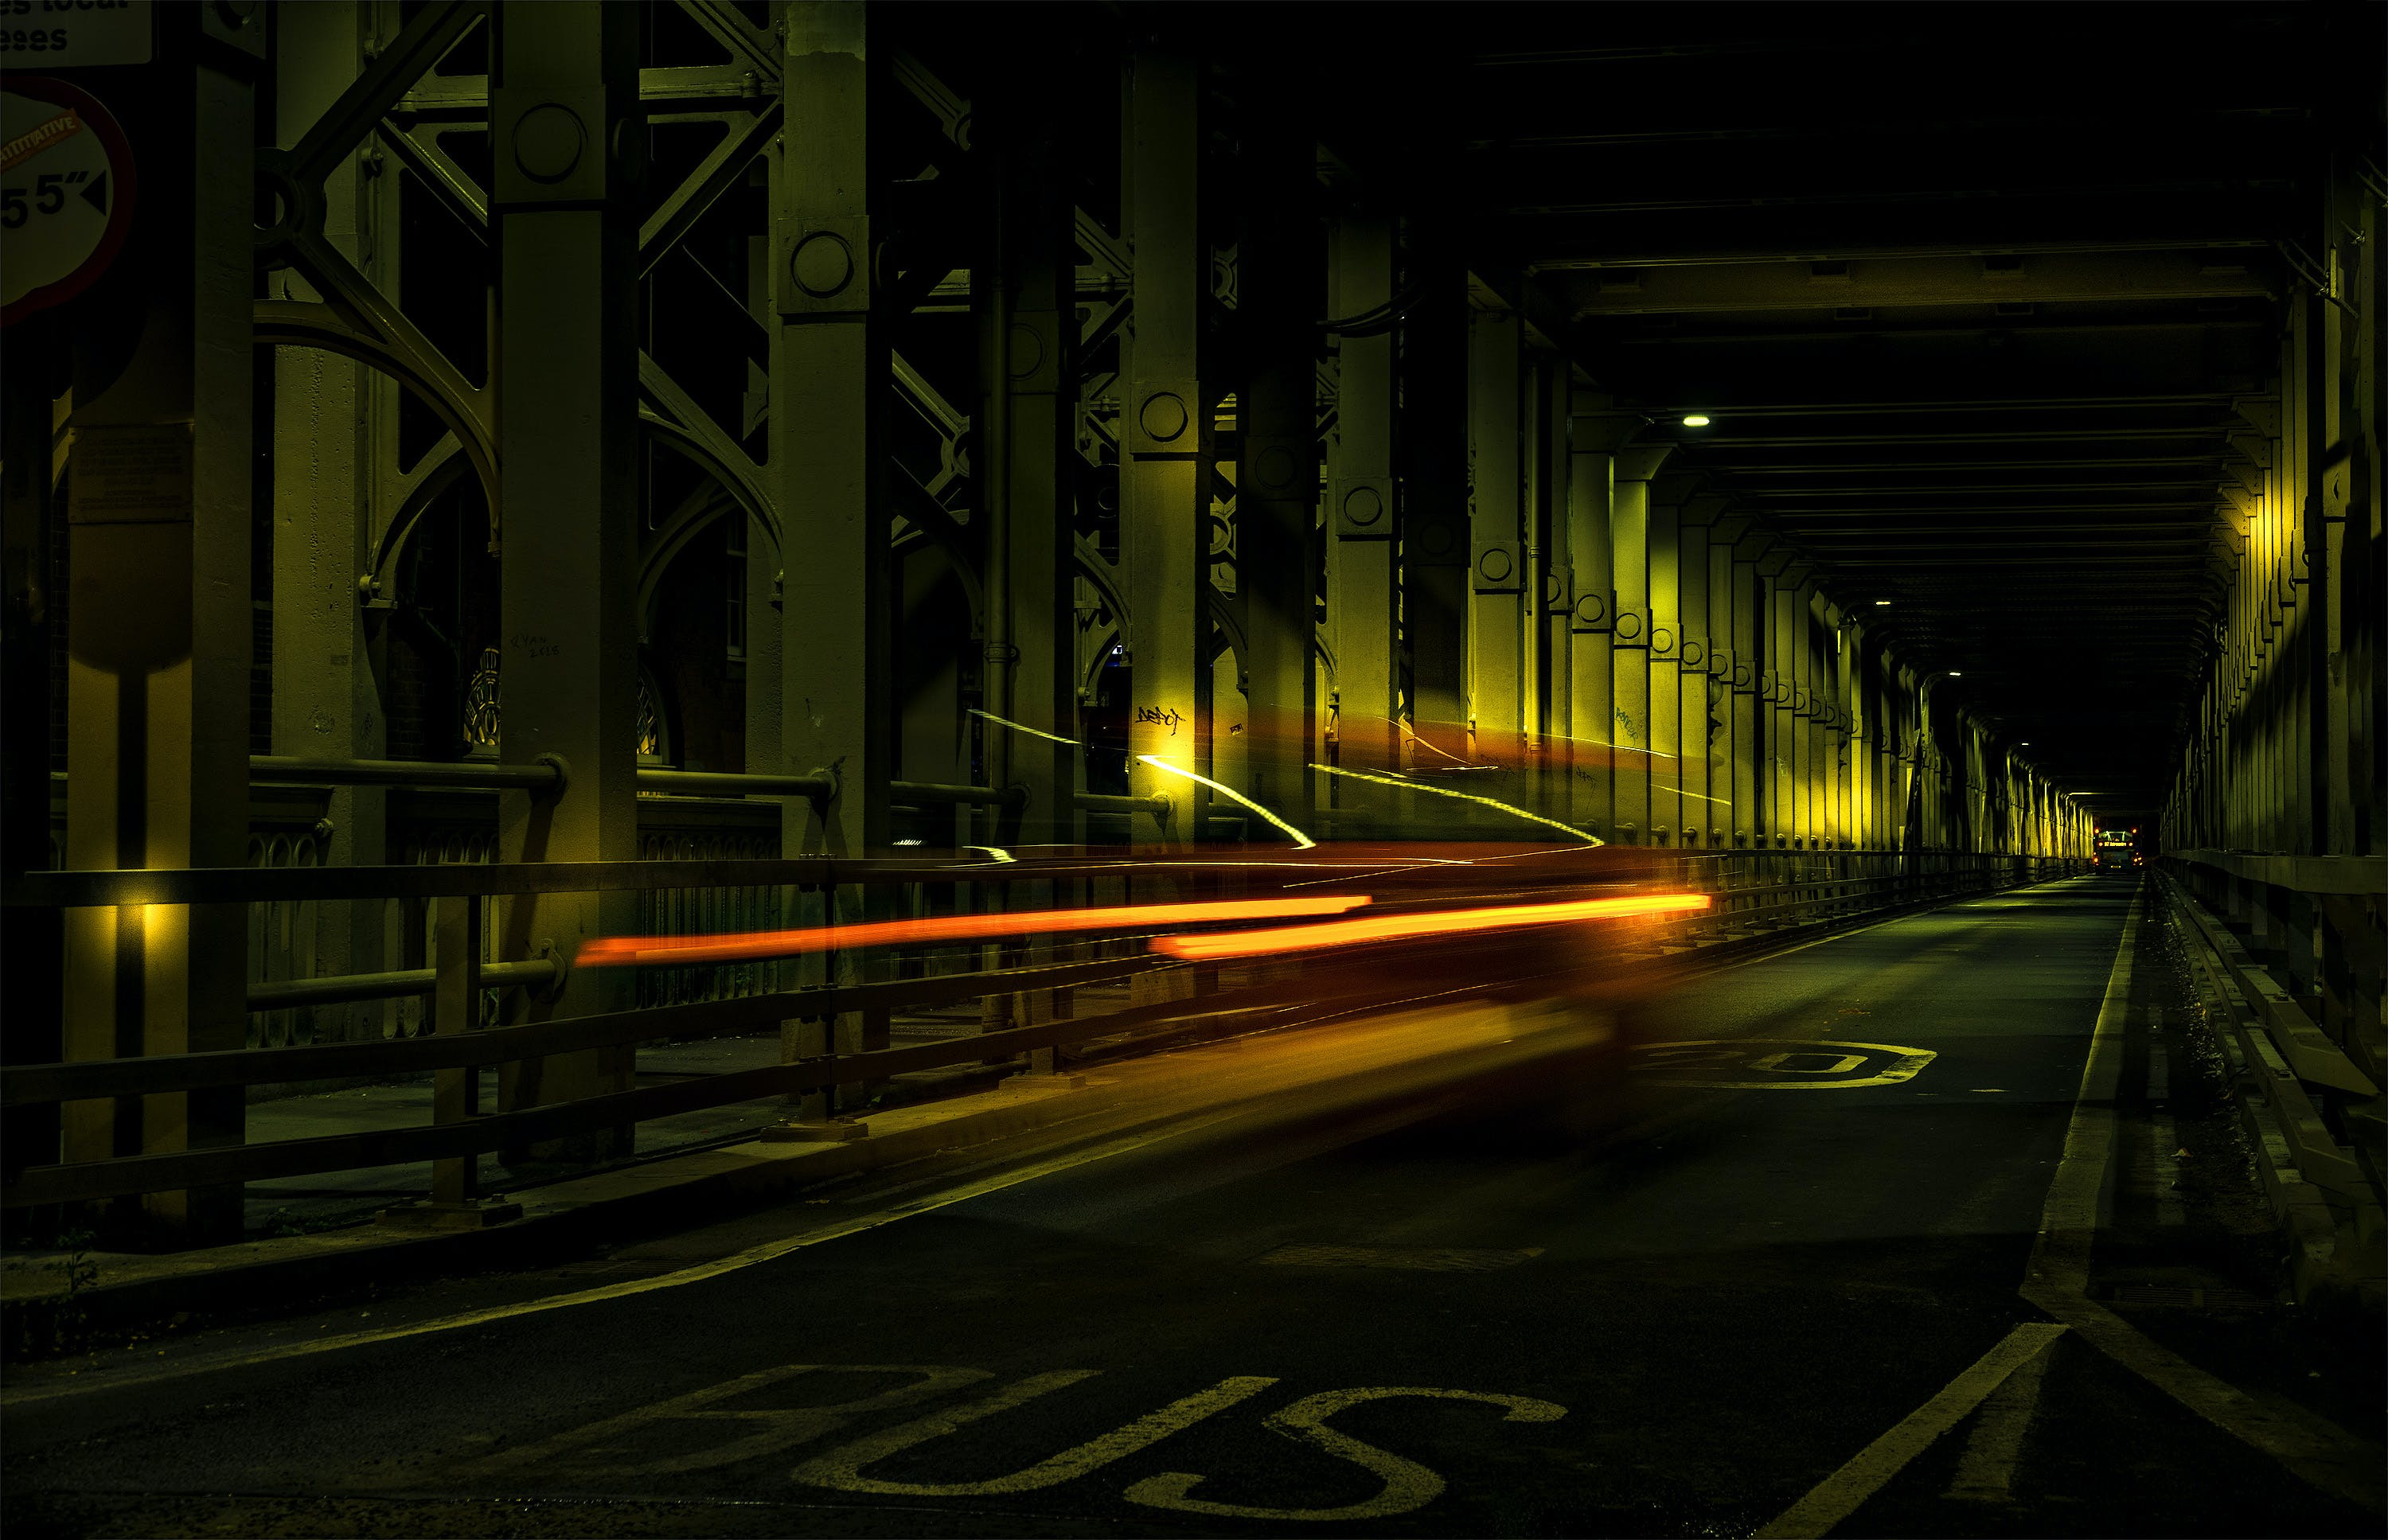 Long Exposure Photo of Car on Road